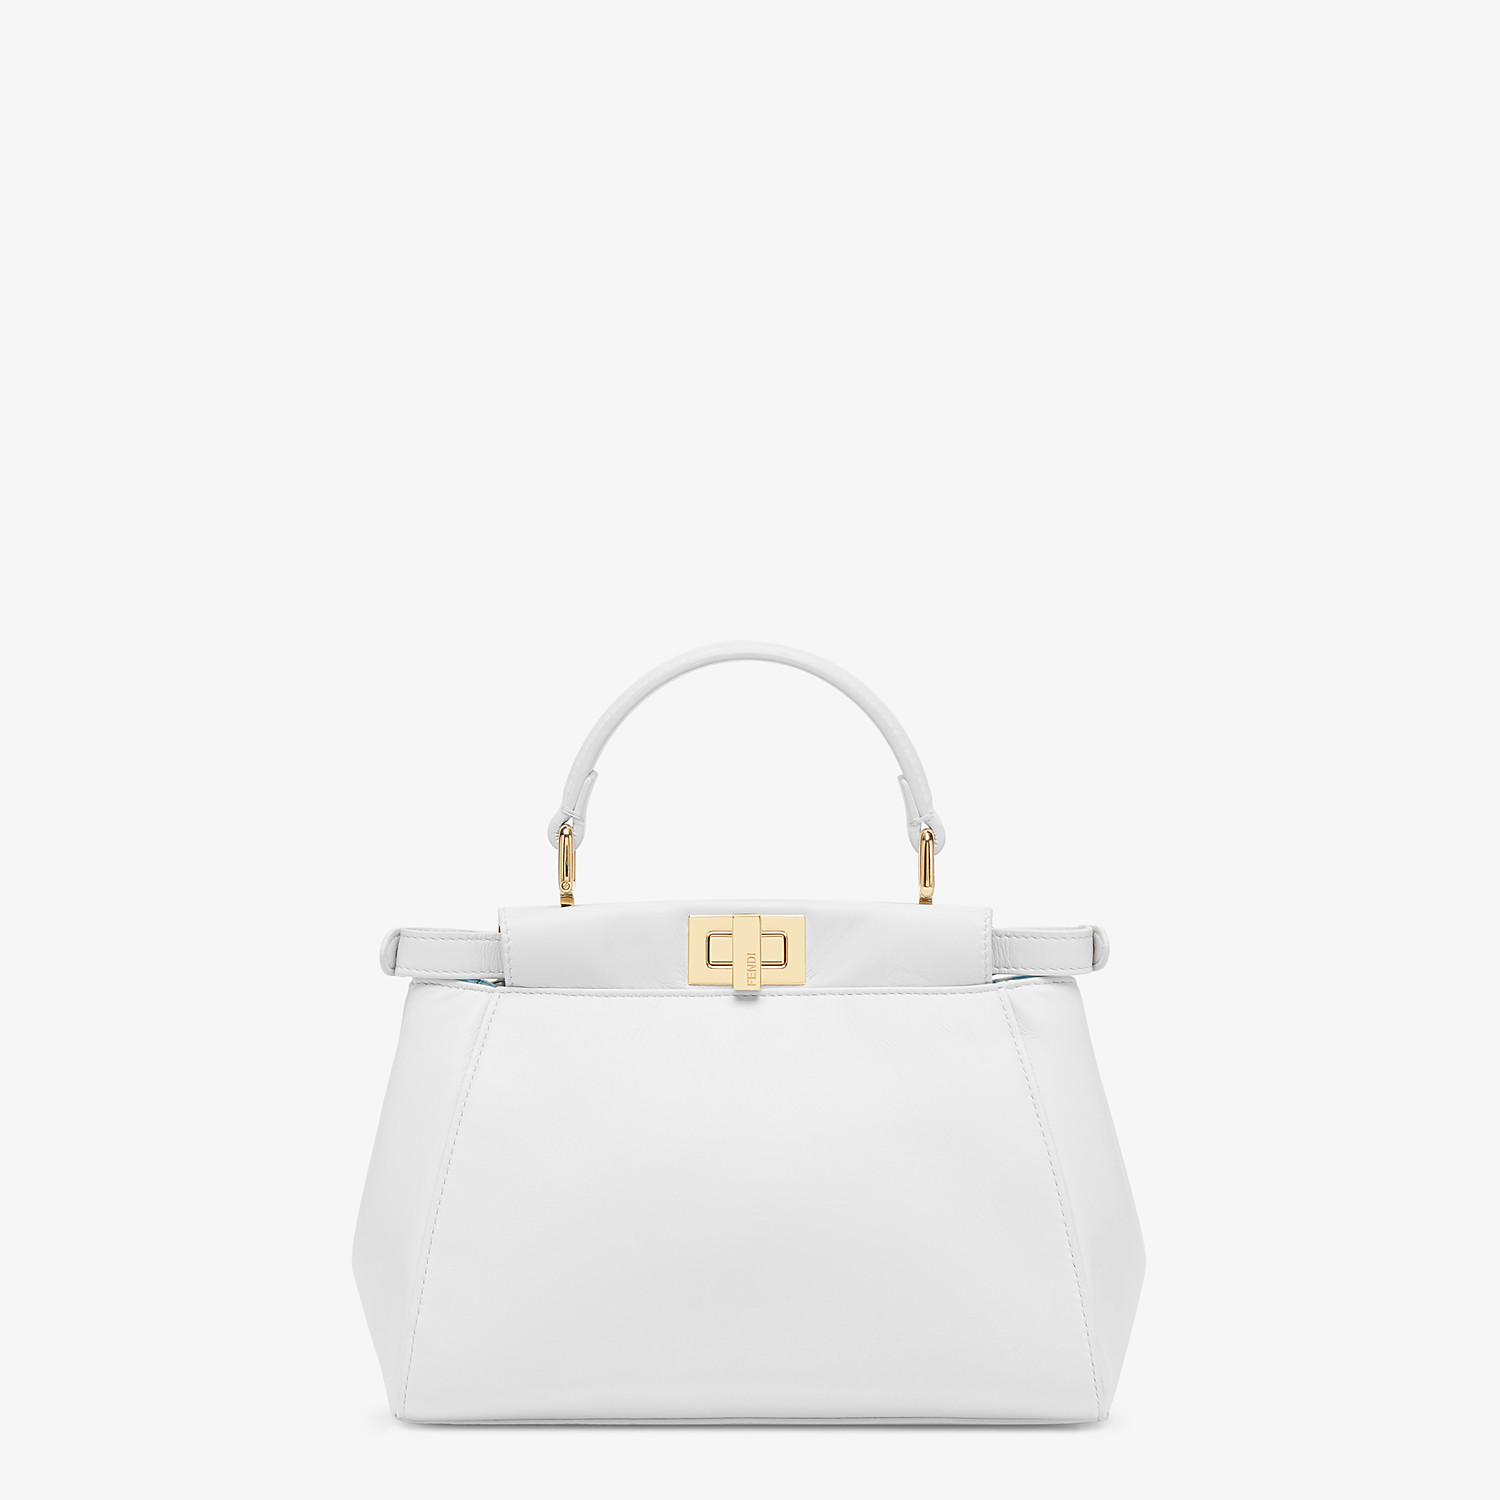 FENDI PEEKABOO ICONIC MINI - White nappa leather bag - view 4 detail